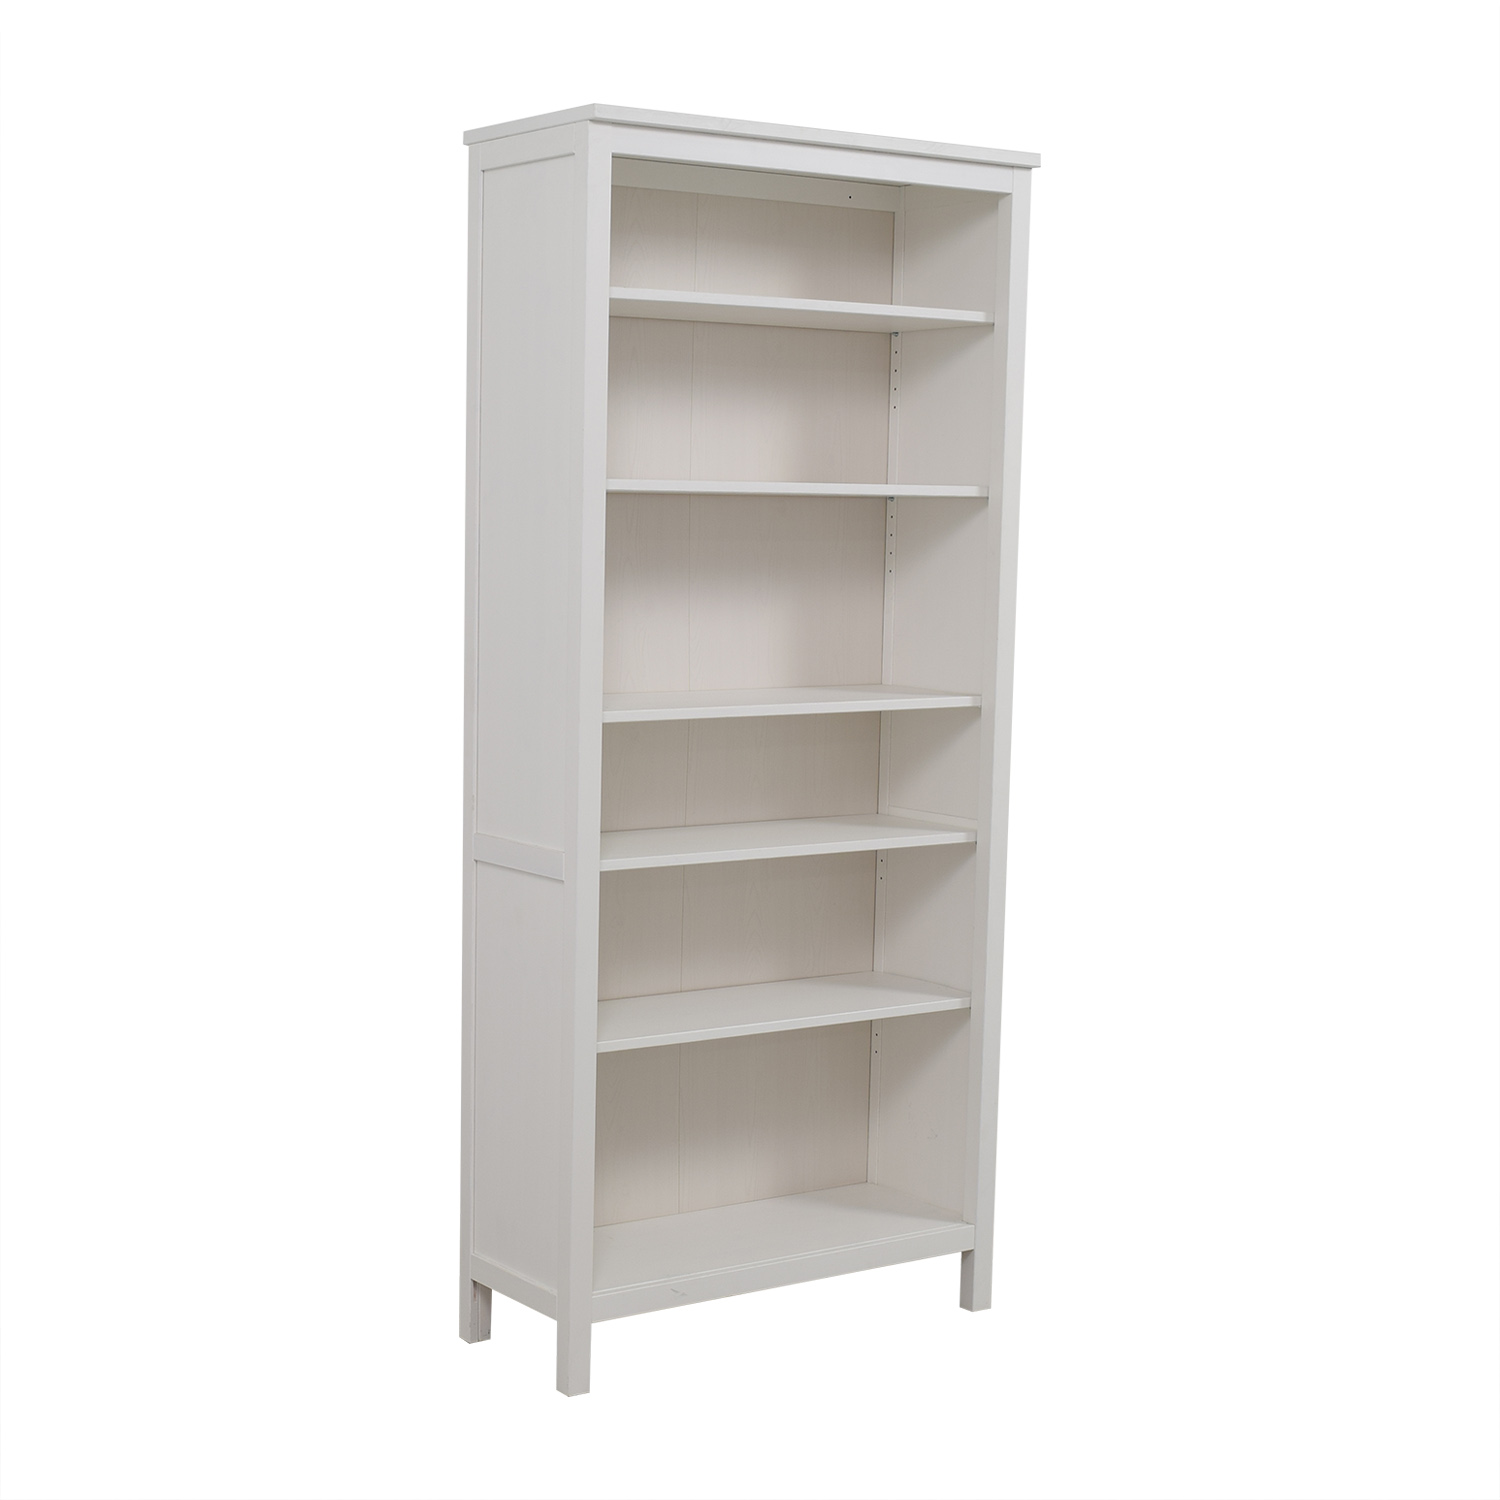 34 off ikea ikea white hemnes bookshelf storage. Black Bedroom Furniture Sets. Home Design Ideas